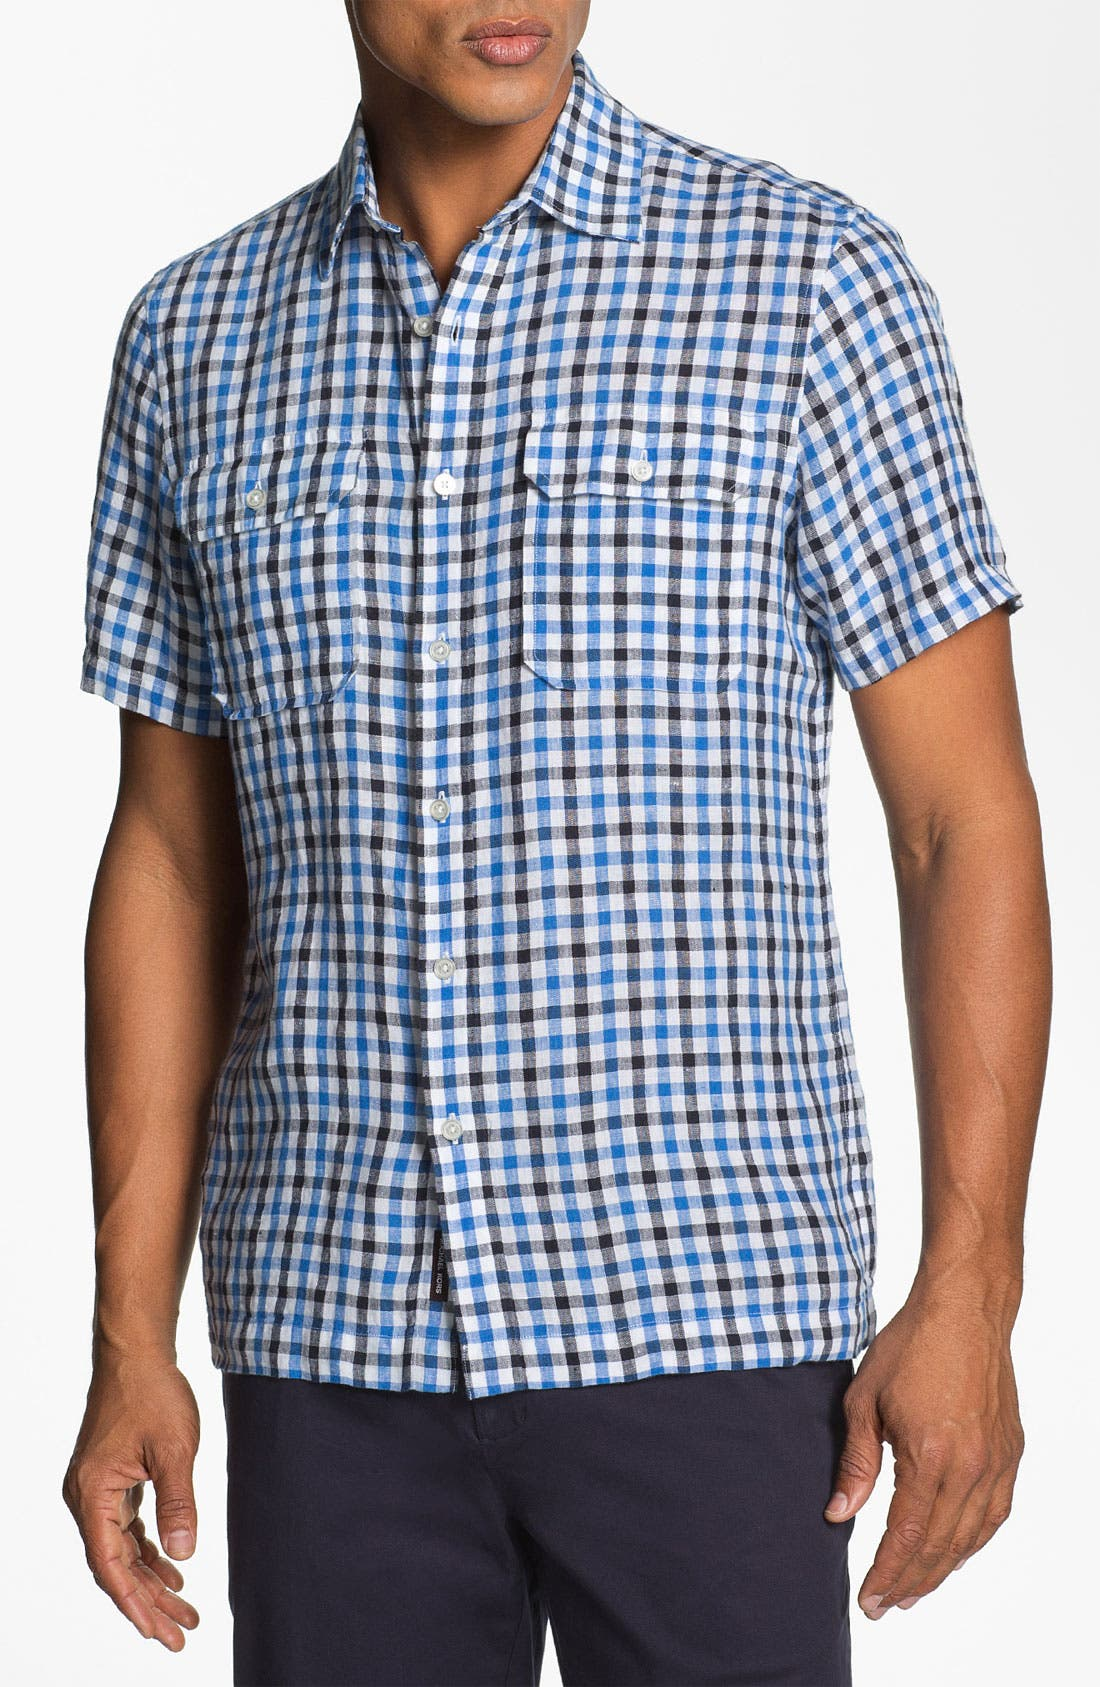 Alternate Image 1 Selected - Michael Kors 'Percy Check' Tailored Fit Sport Shirt